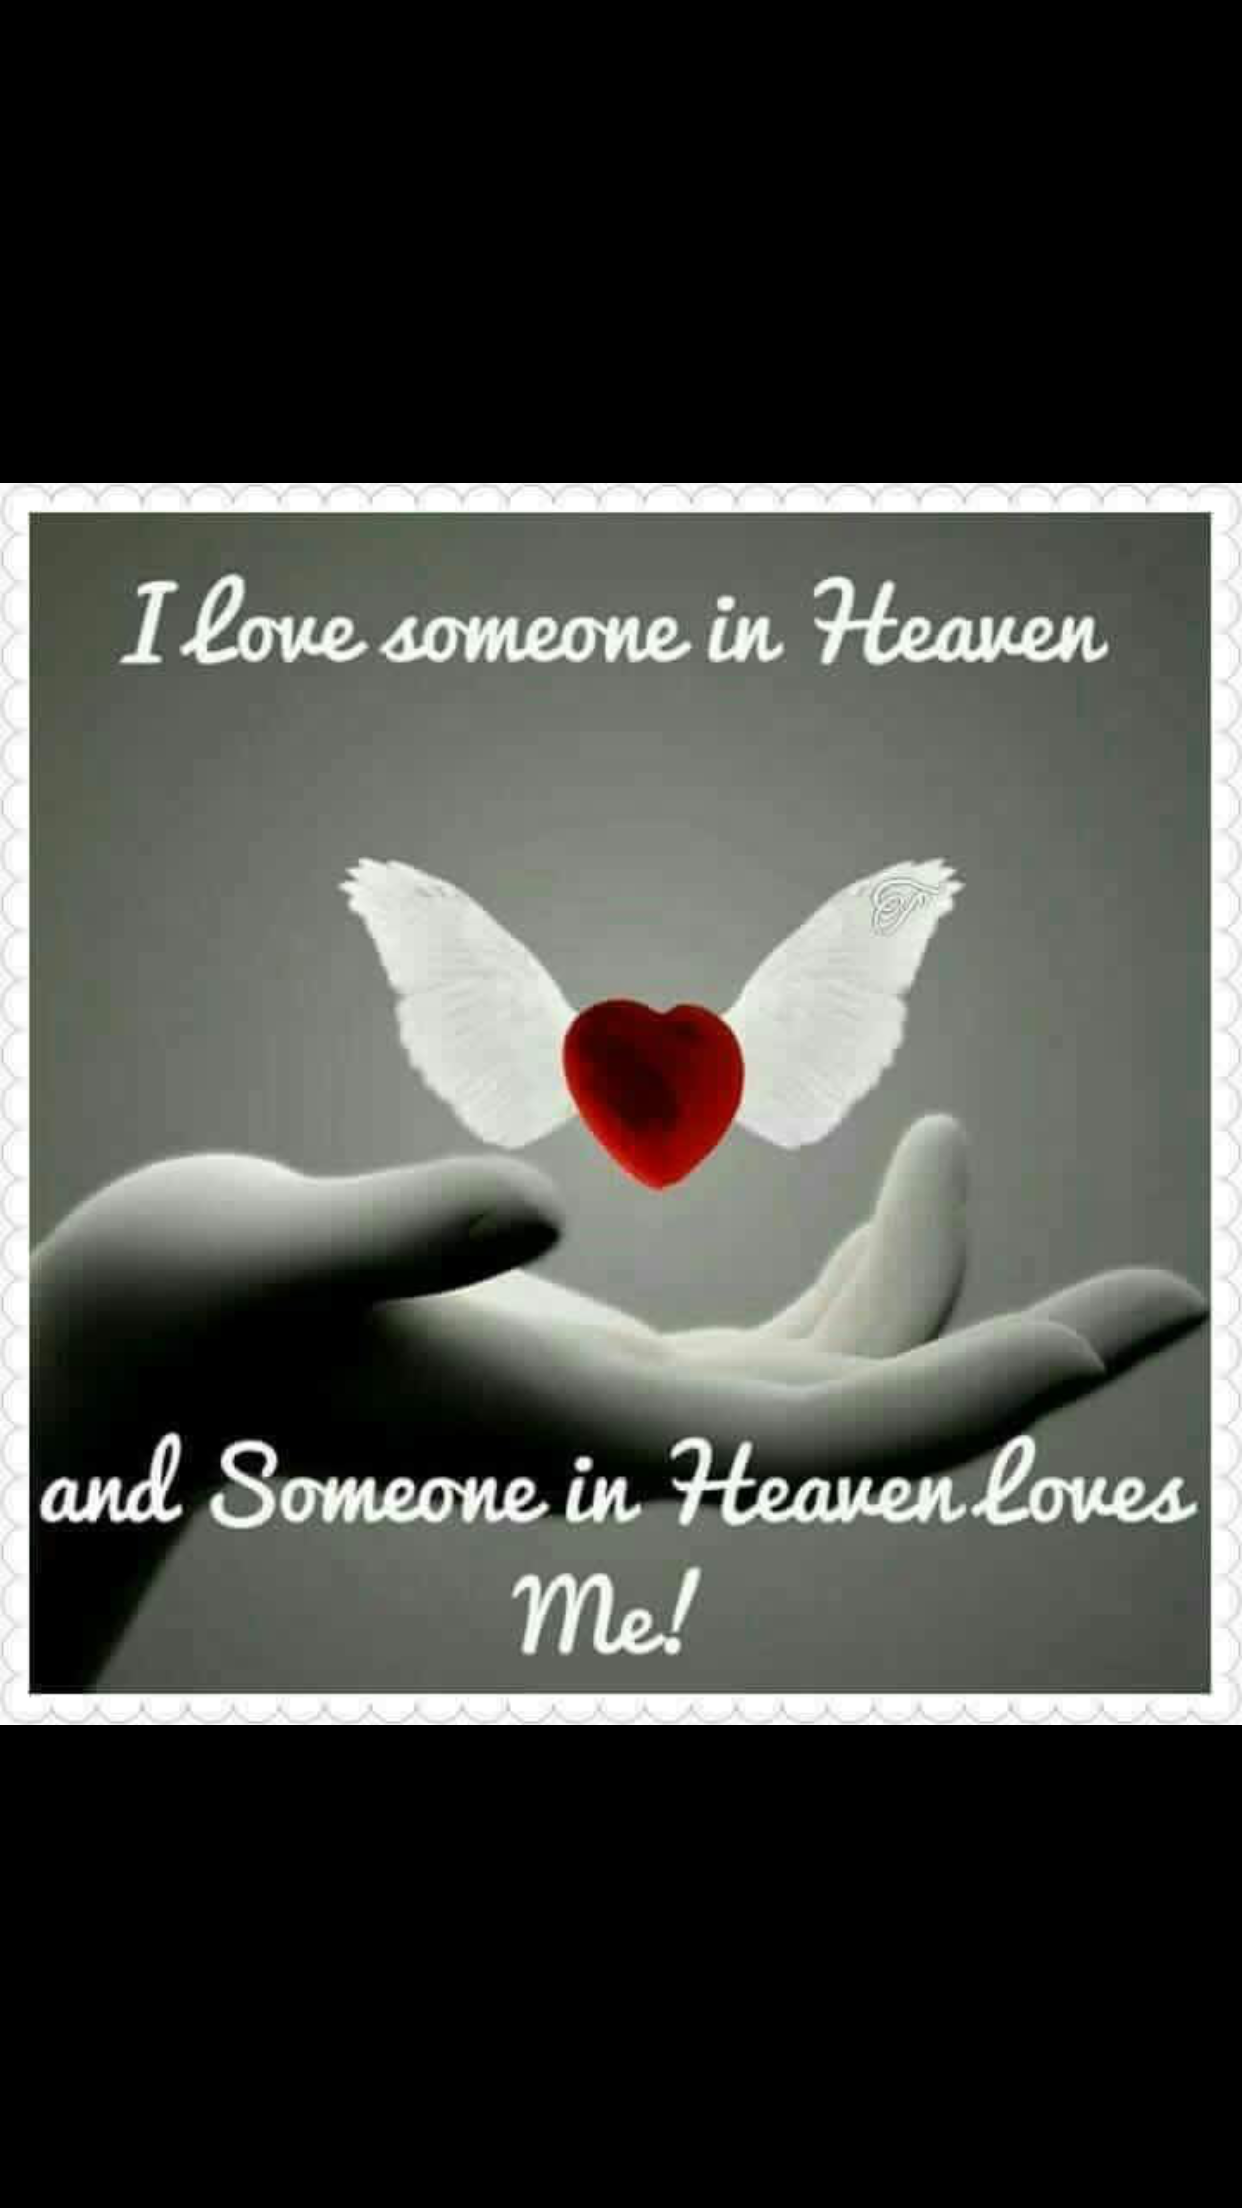 Yes I love someone in heaven and someone in heaven loves me